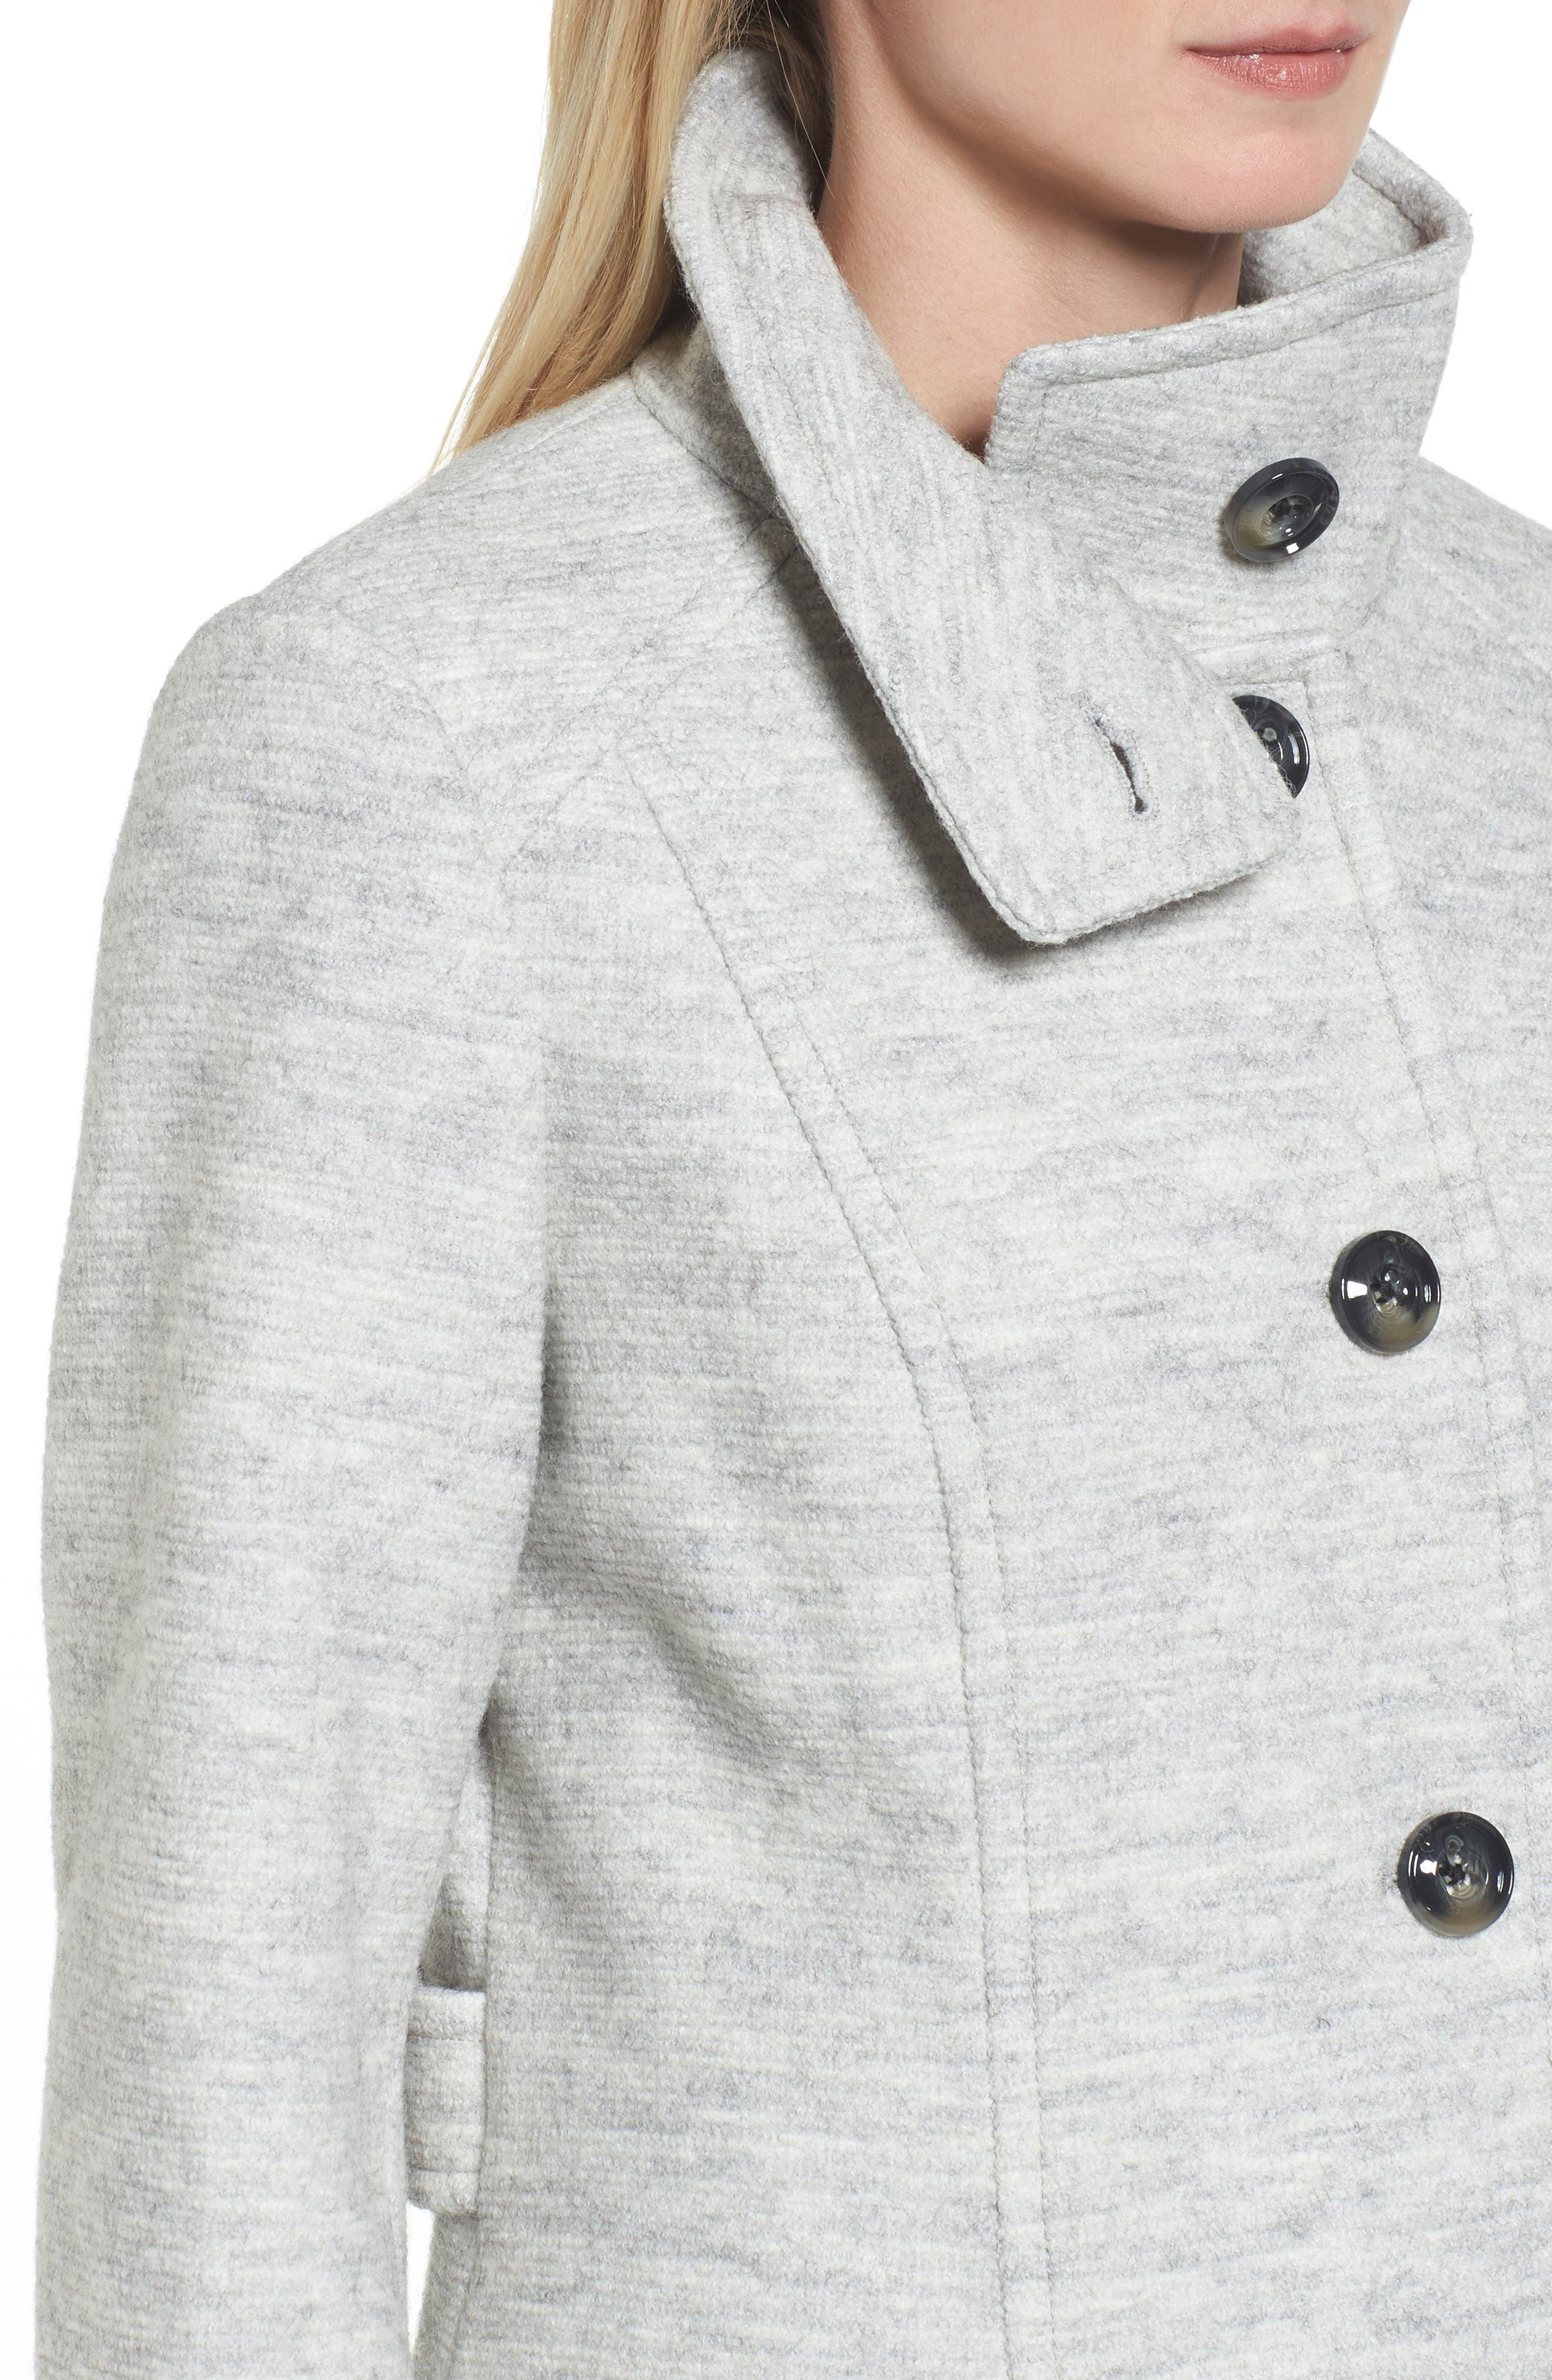 Stand Collar Coat,                             Alternate thumbnail 4, color,                             Pale Grey